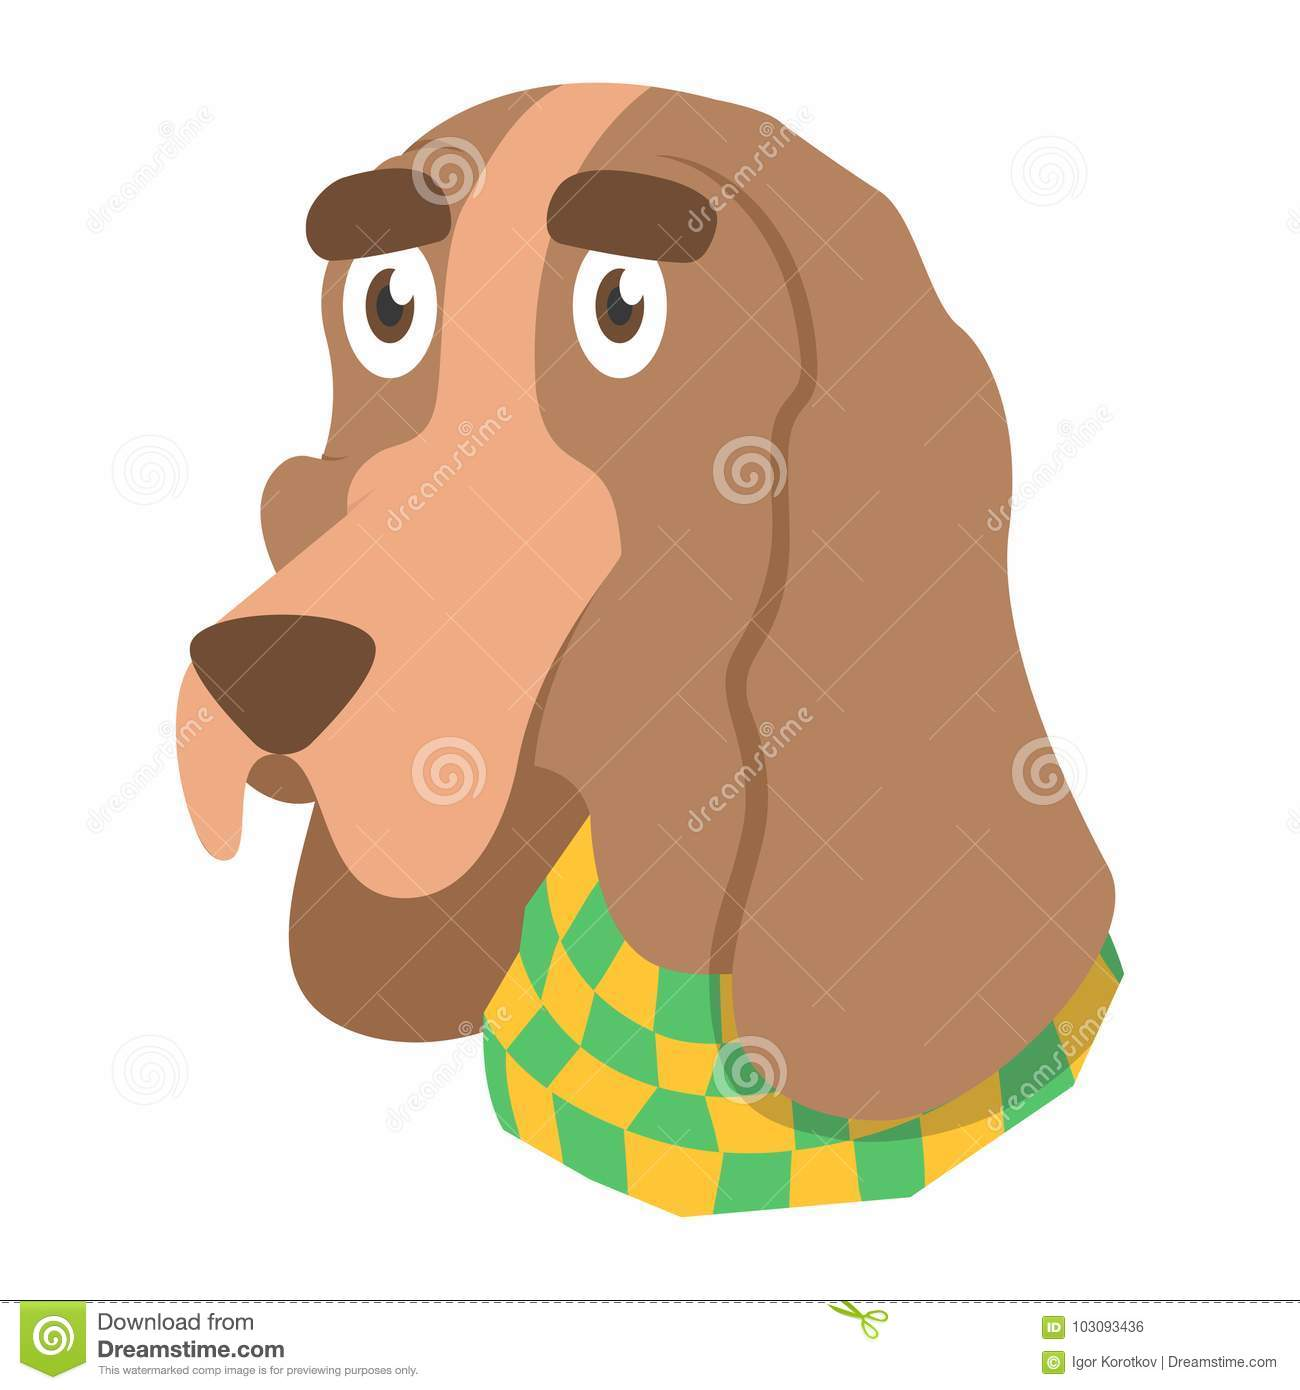 Cartoon Dog Basset Hound In Scarf Flat Dog With Big Eyebrows Stock